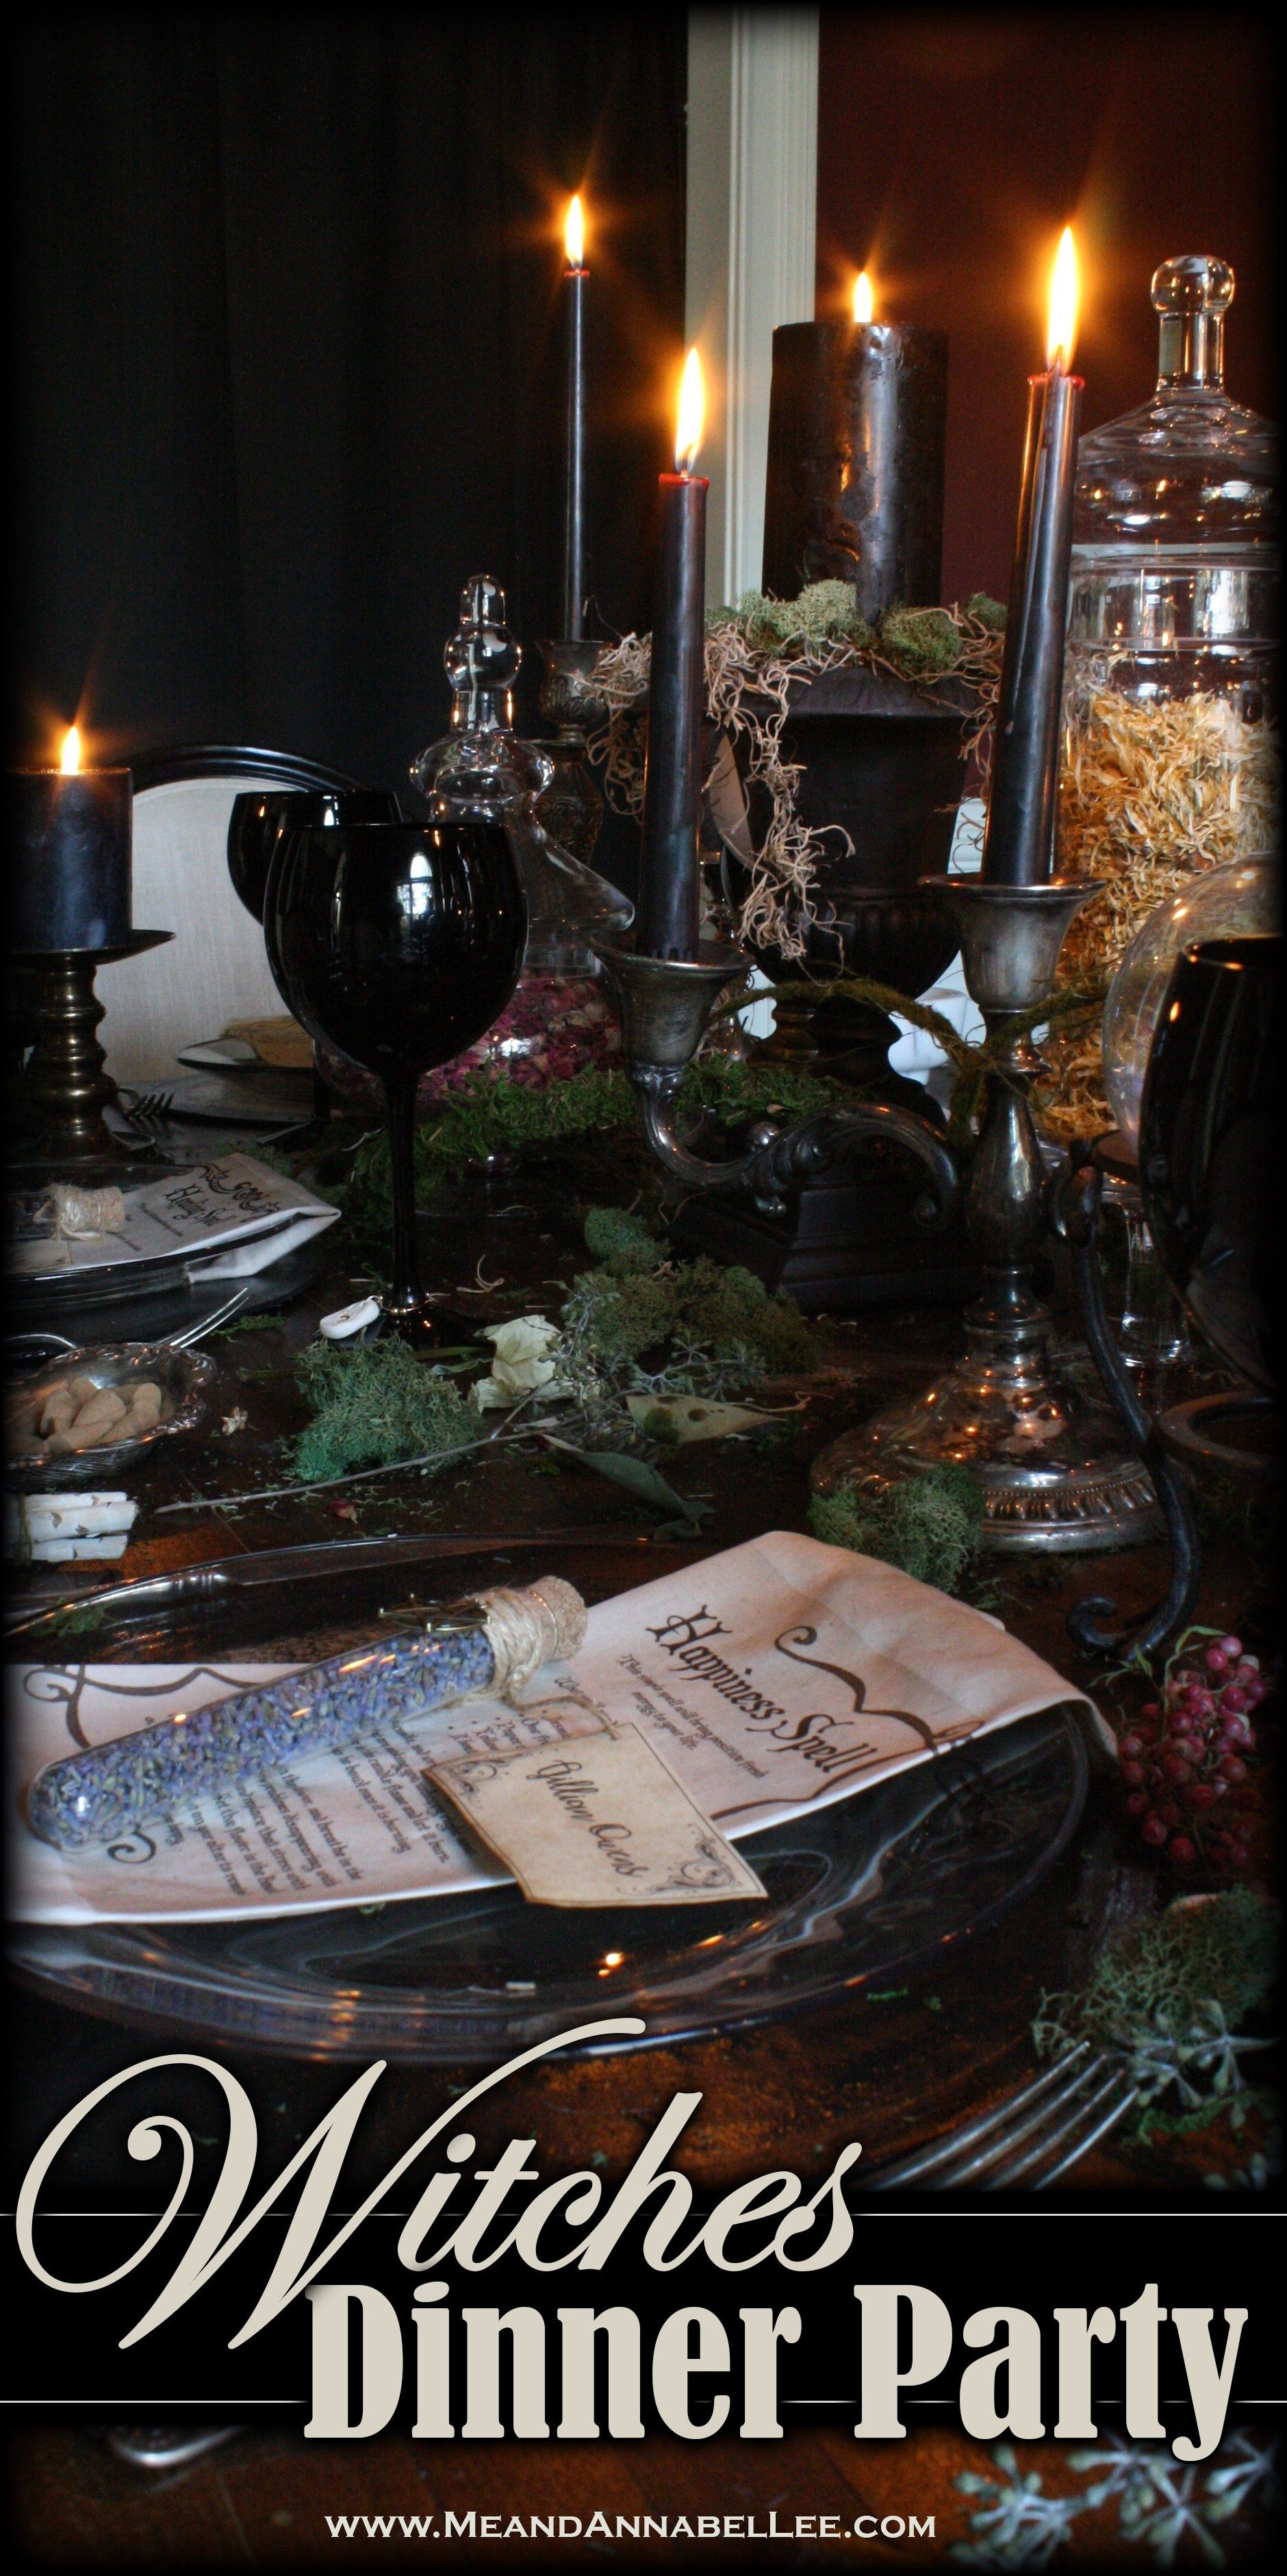 Witches' Dinner Party | Halloween Table | Samhain Celebration | Me and Annabel Lee